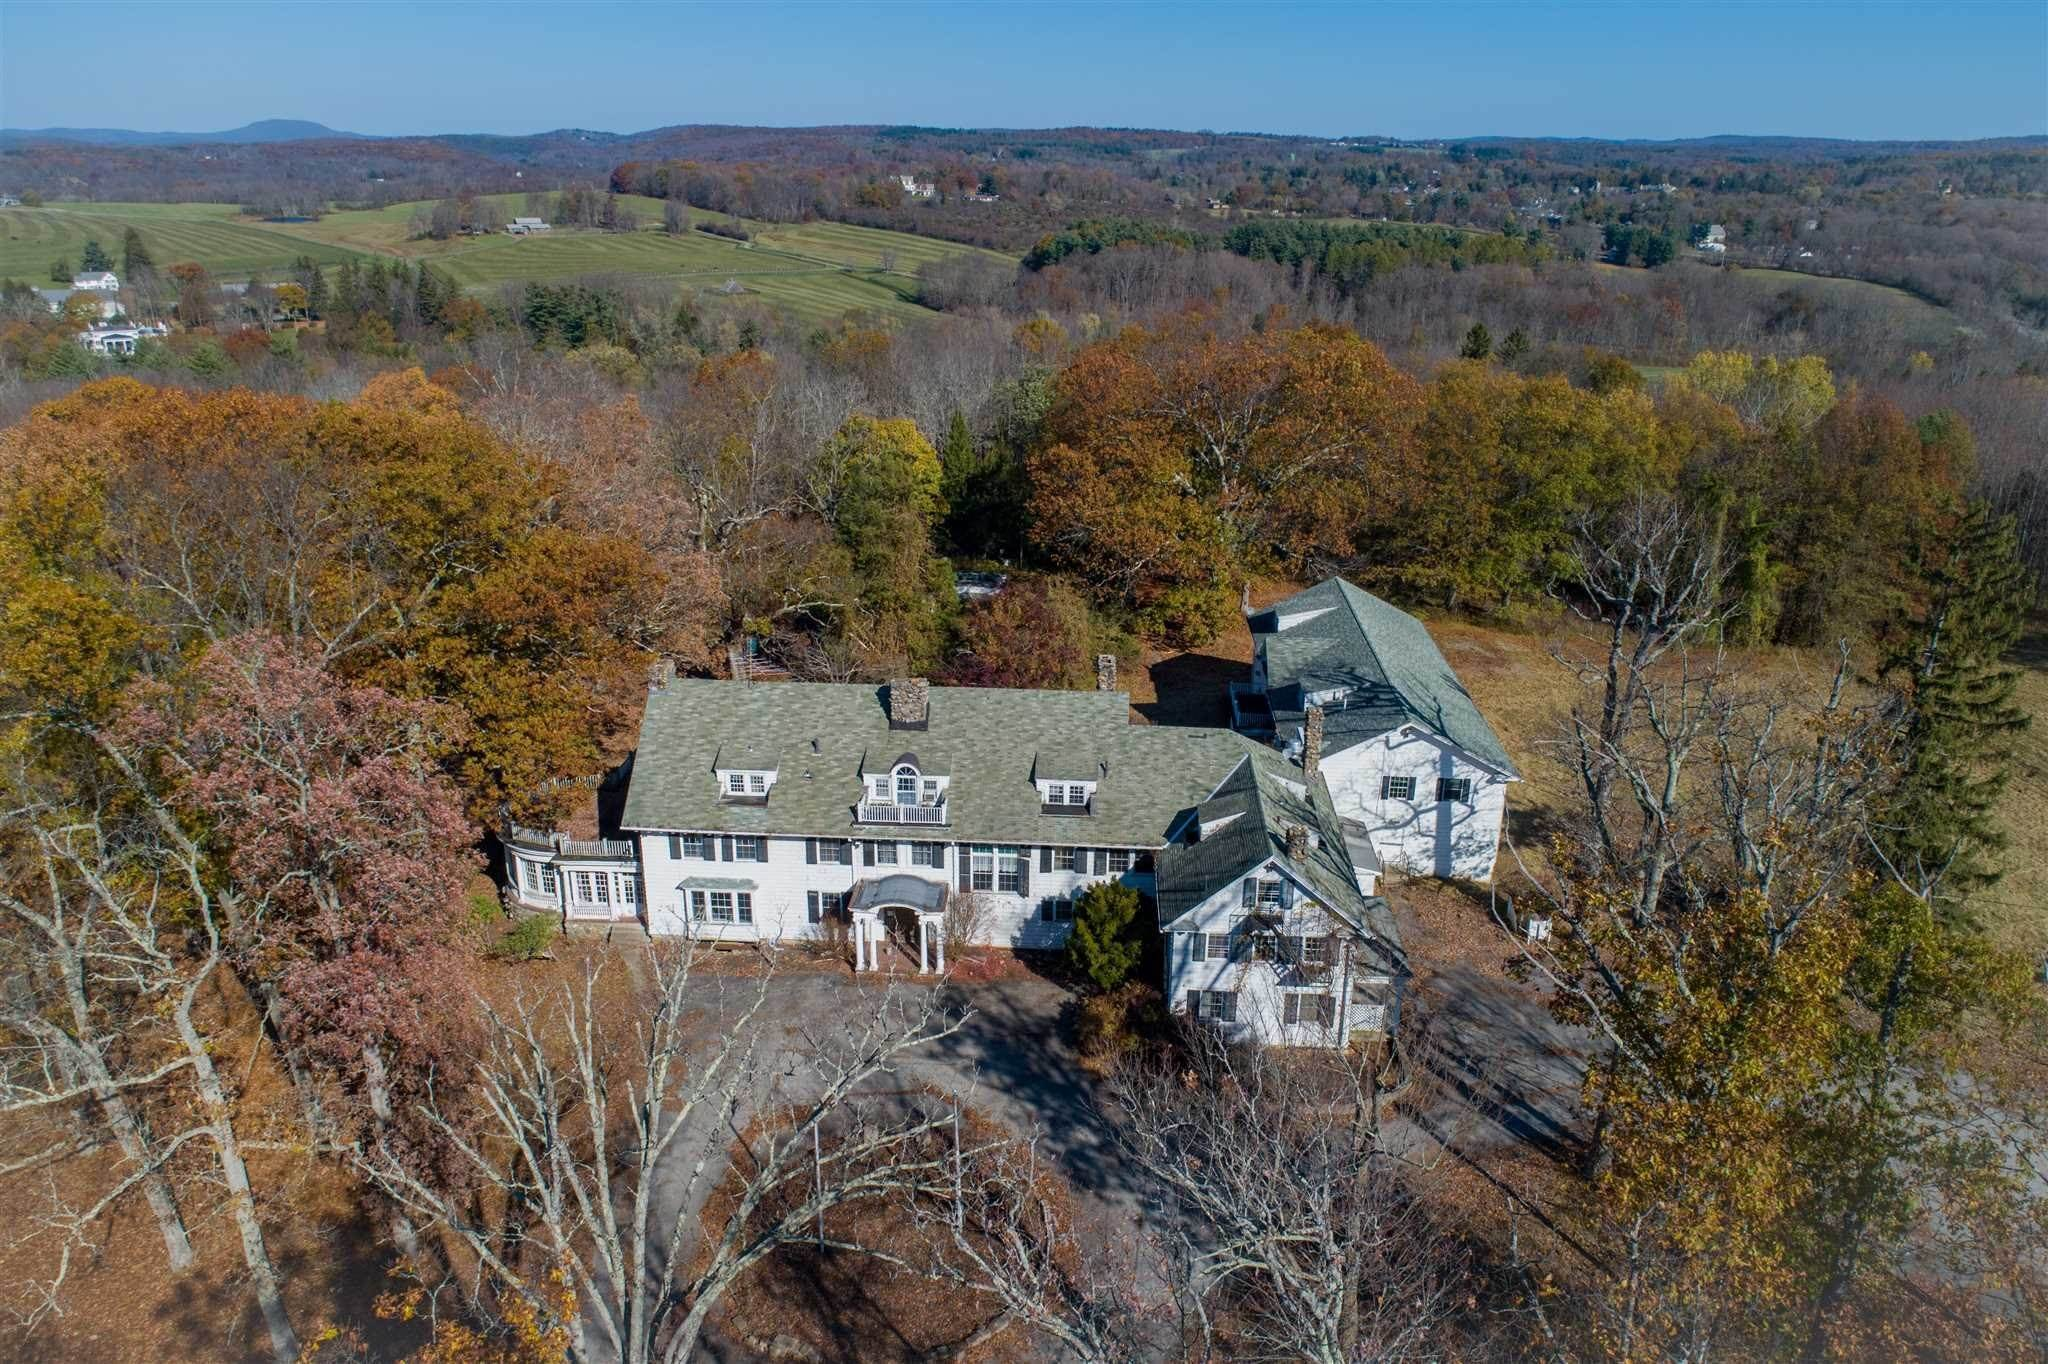 Single Family Homes for Sale at 54 RAMBLE HILL Lane Washington, New York 12545 United States